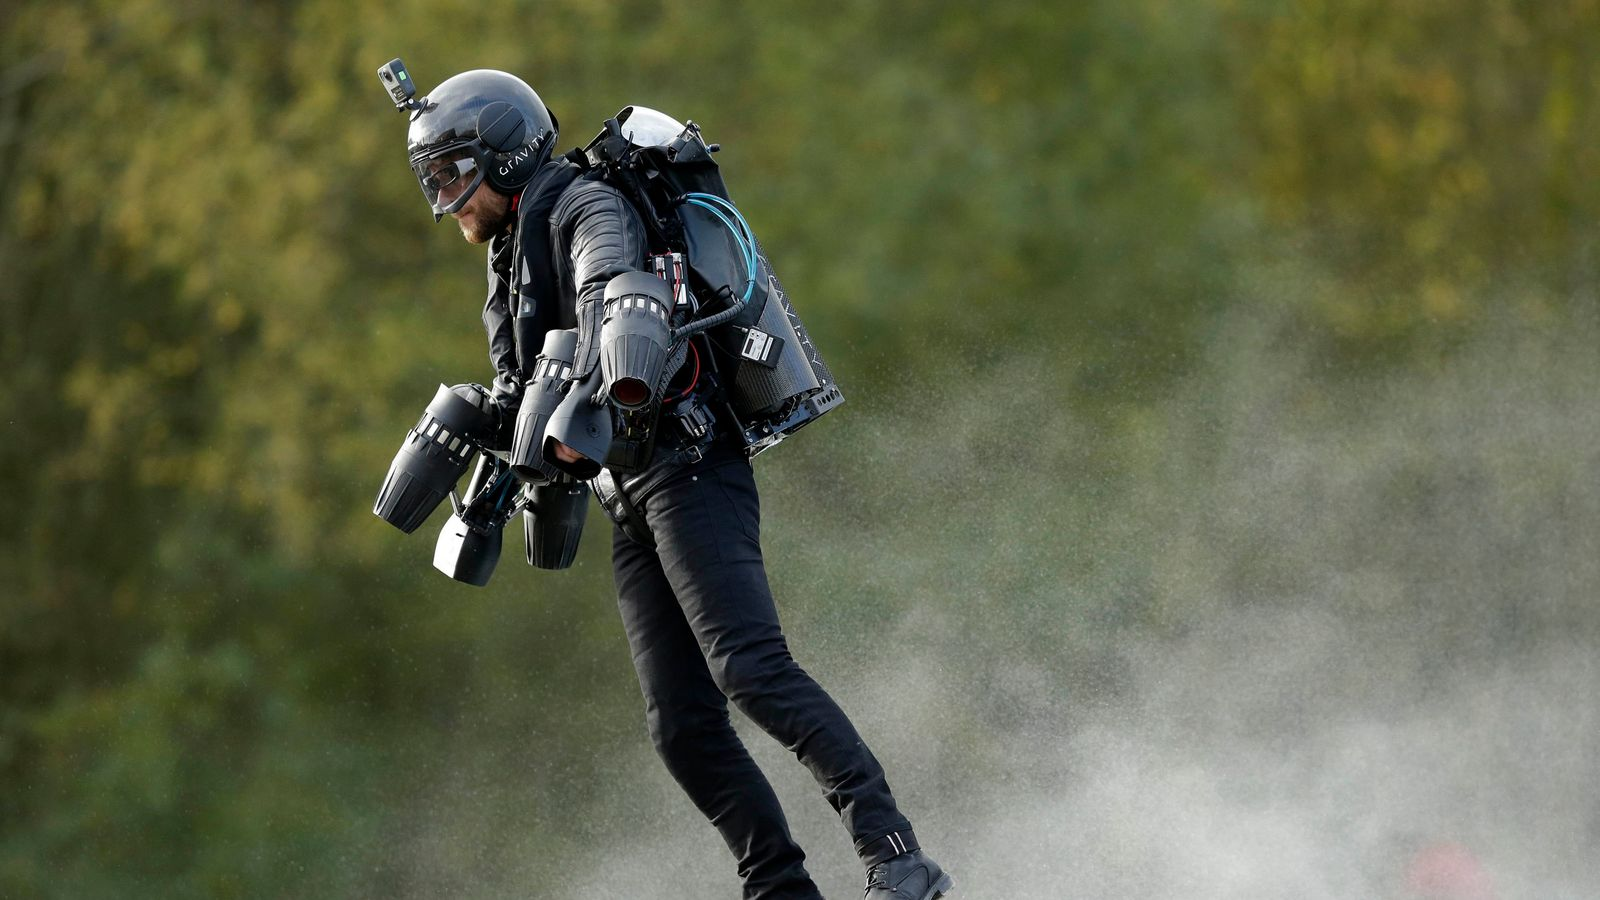 Richard Browning sets world record in jet engine 'Iron Man' suit. A real-life flying man reaches a speed of 32mph to set a world record with his body-controlled jet engine power suit.